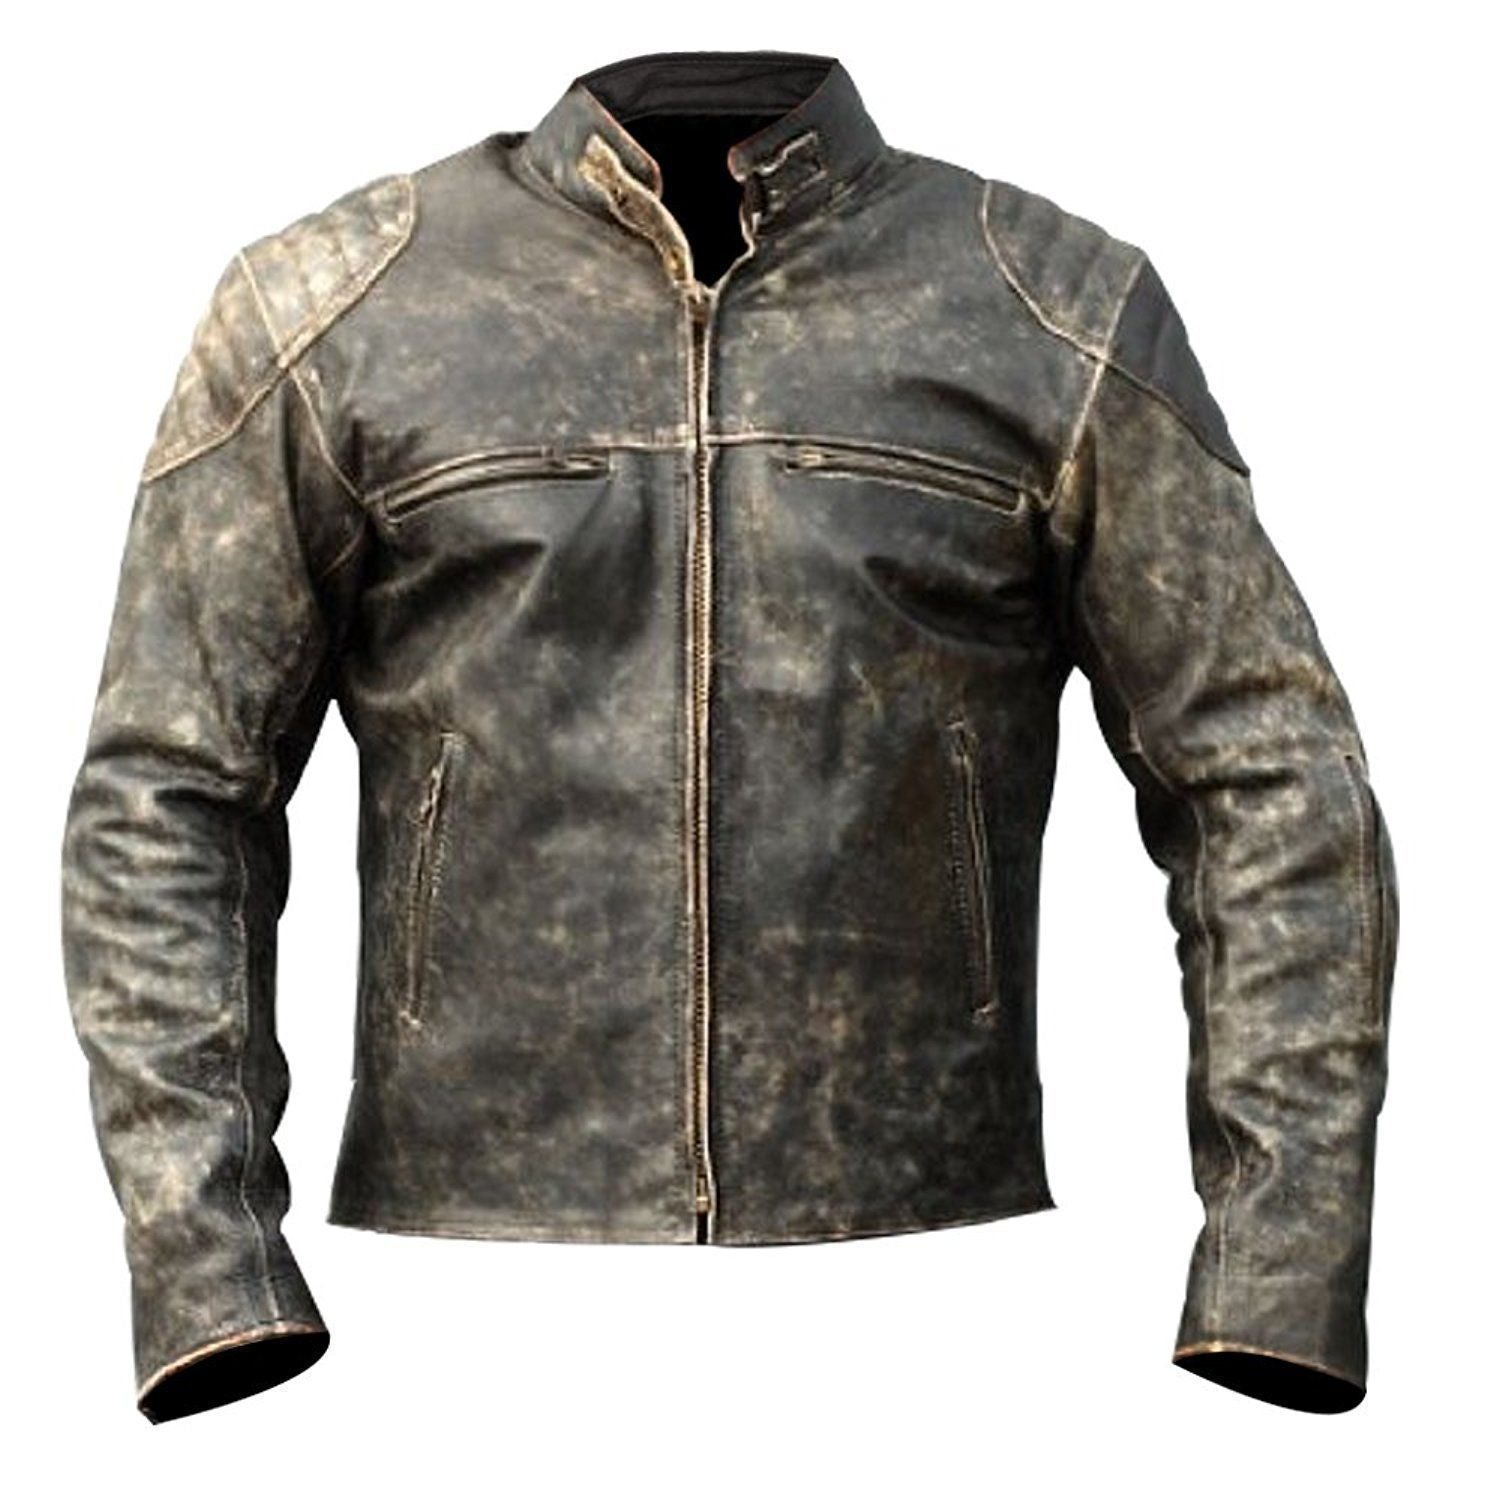 Theon's Distressed Leather Jacket With Shoulder Patch